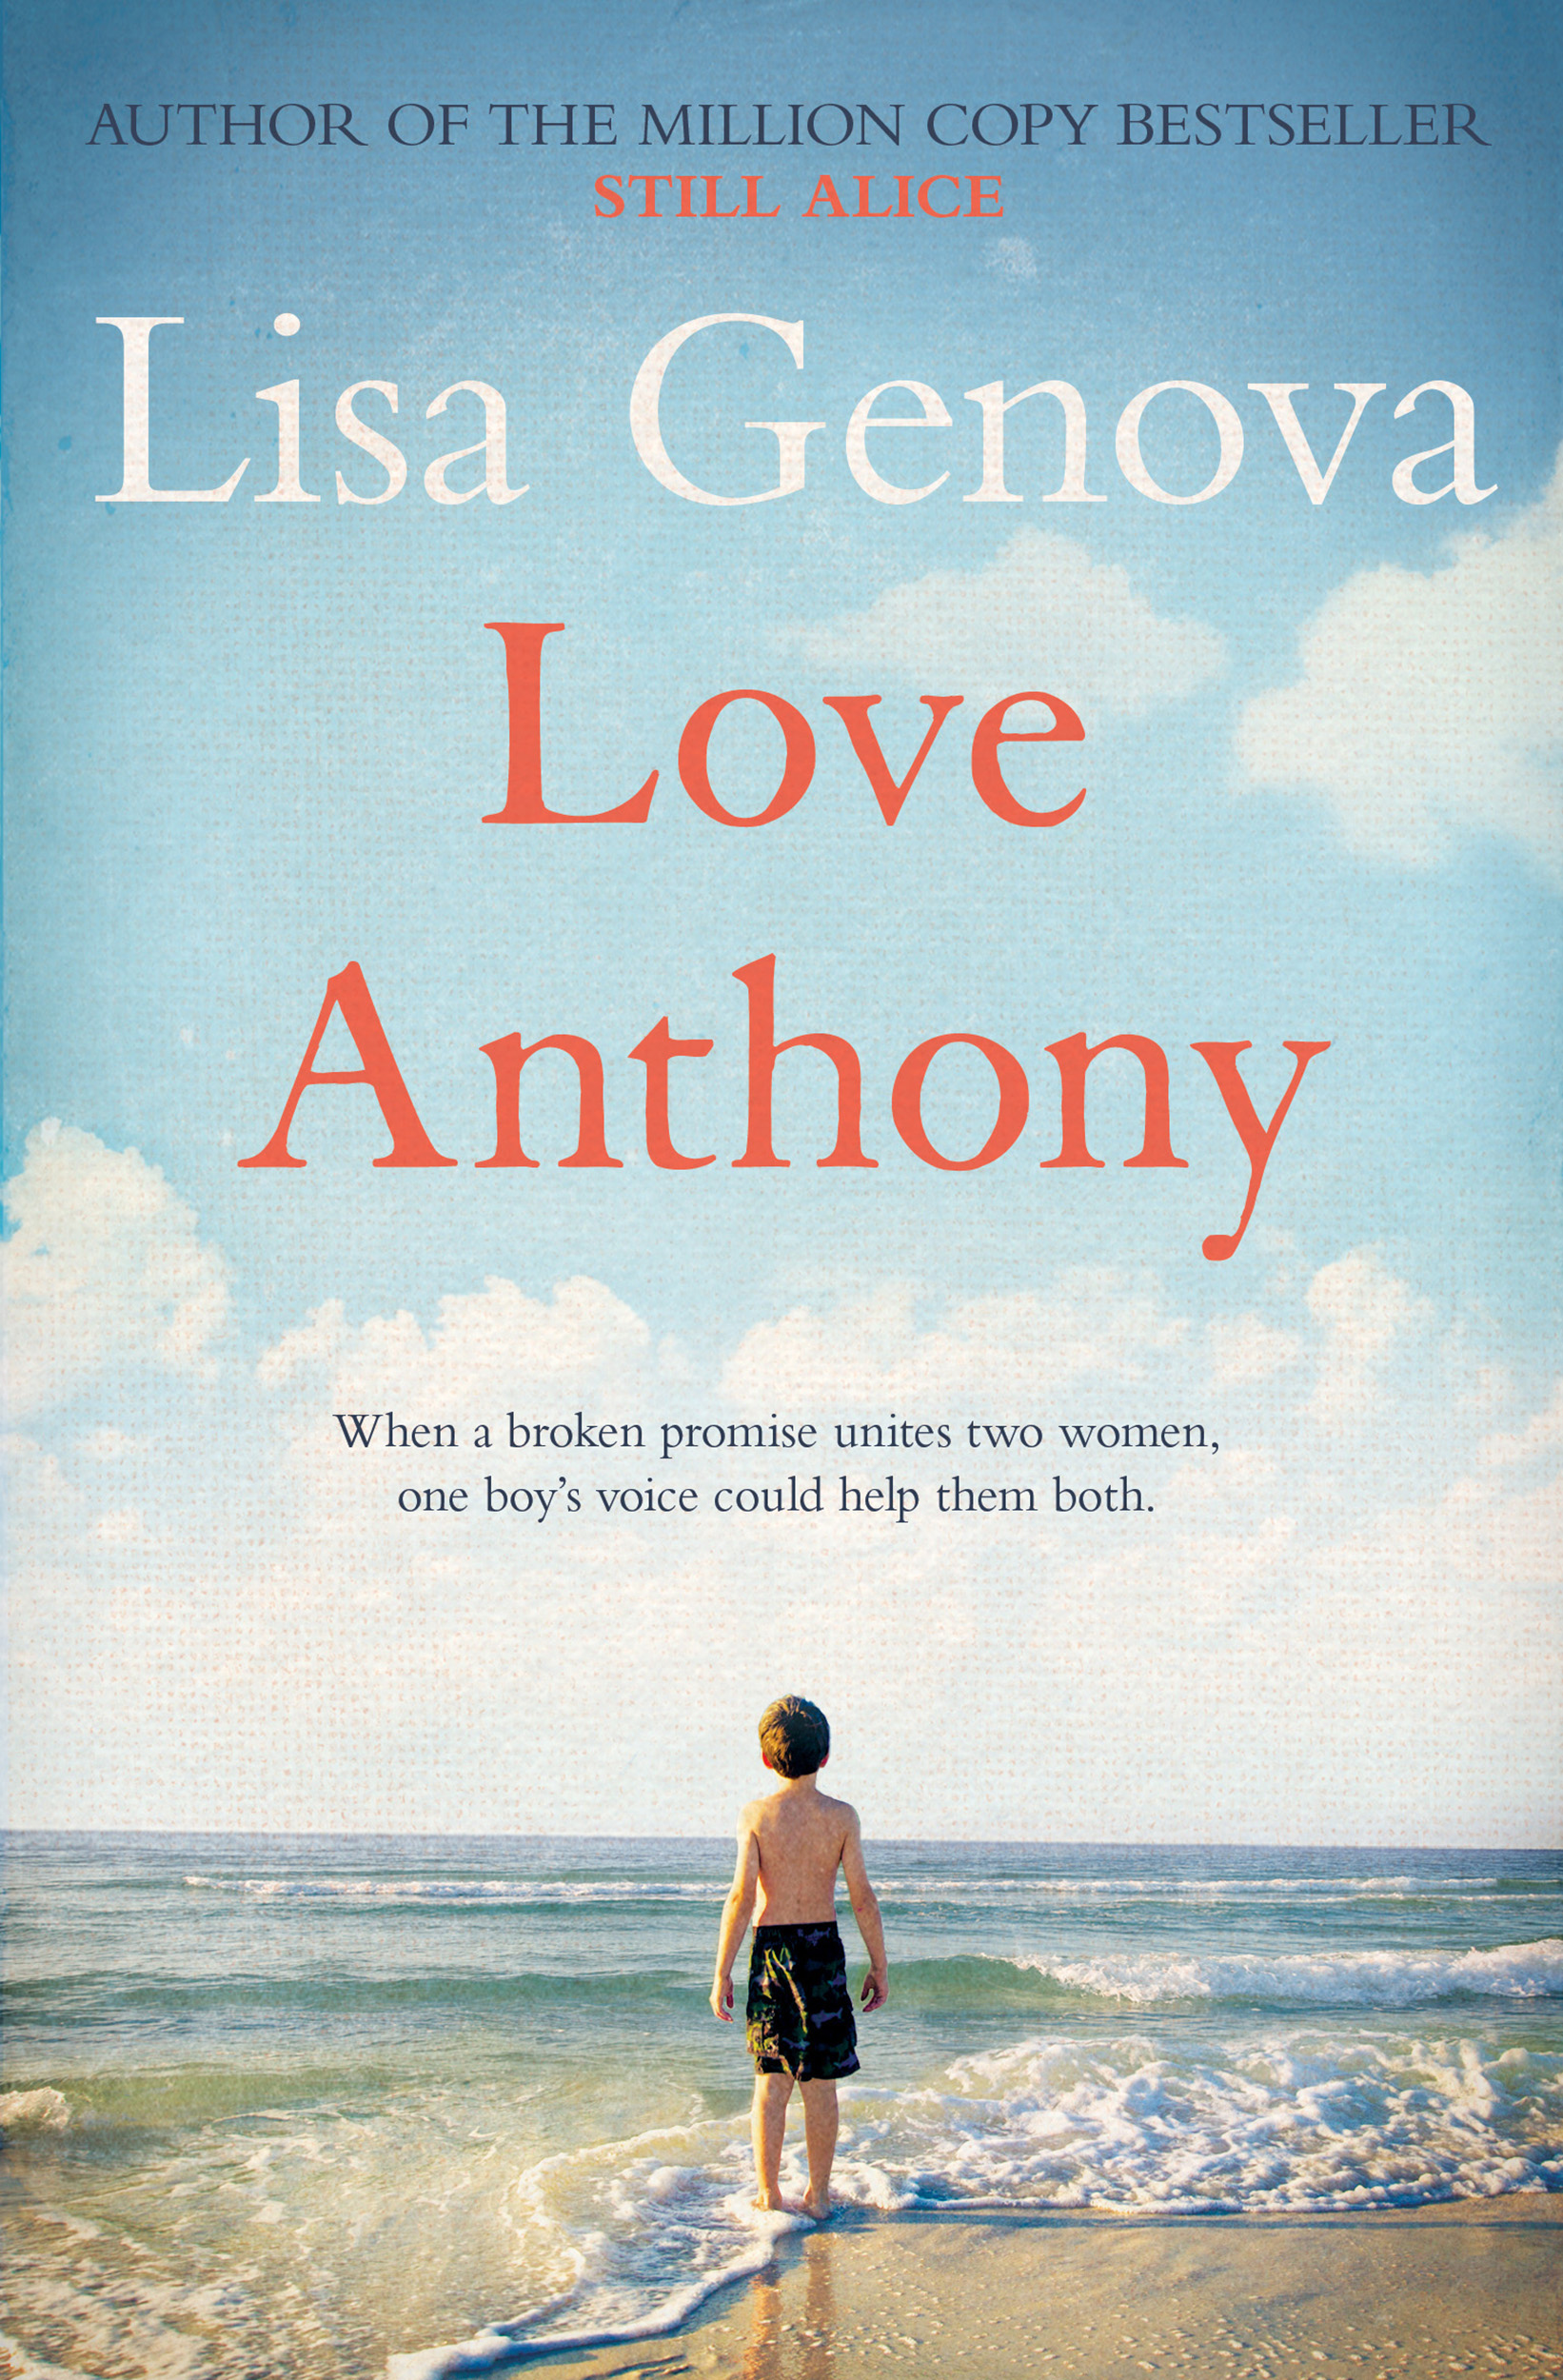 Love Anthony   Book by Lisa Genova   Official Publisher Page   Simon     Cvr9781471113277 9781471113277 hr